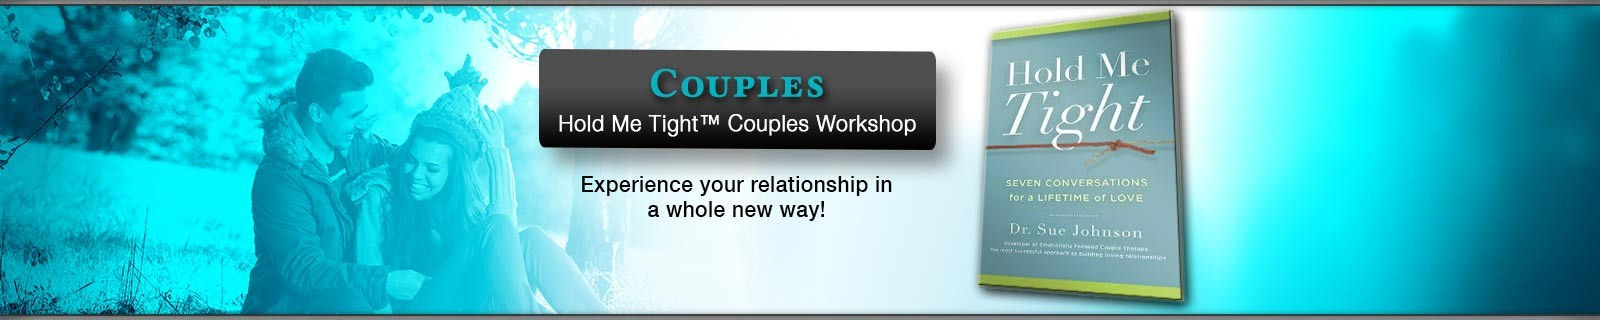 Hold Me Tight® Couples Workshop